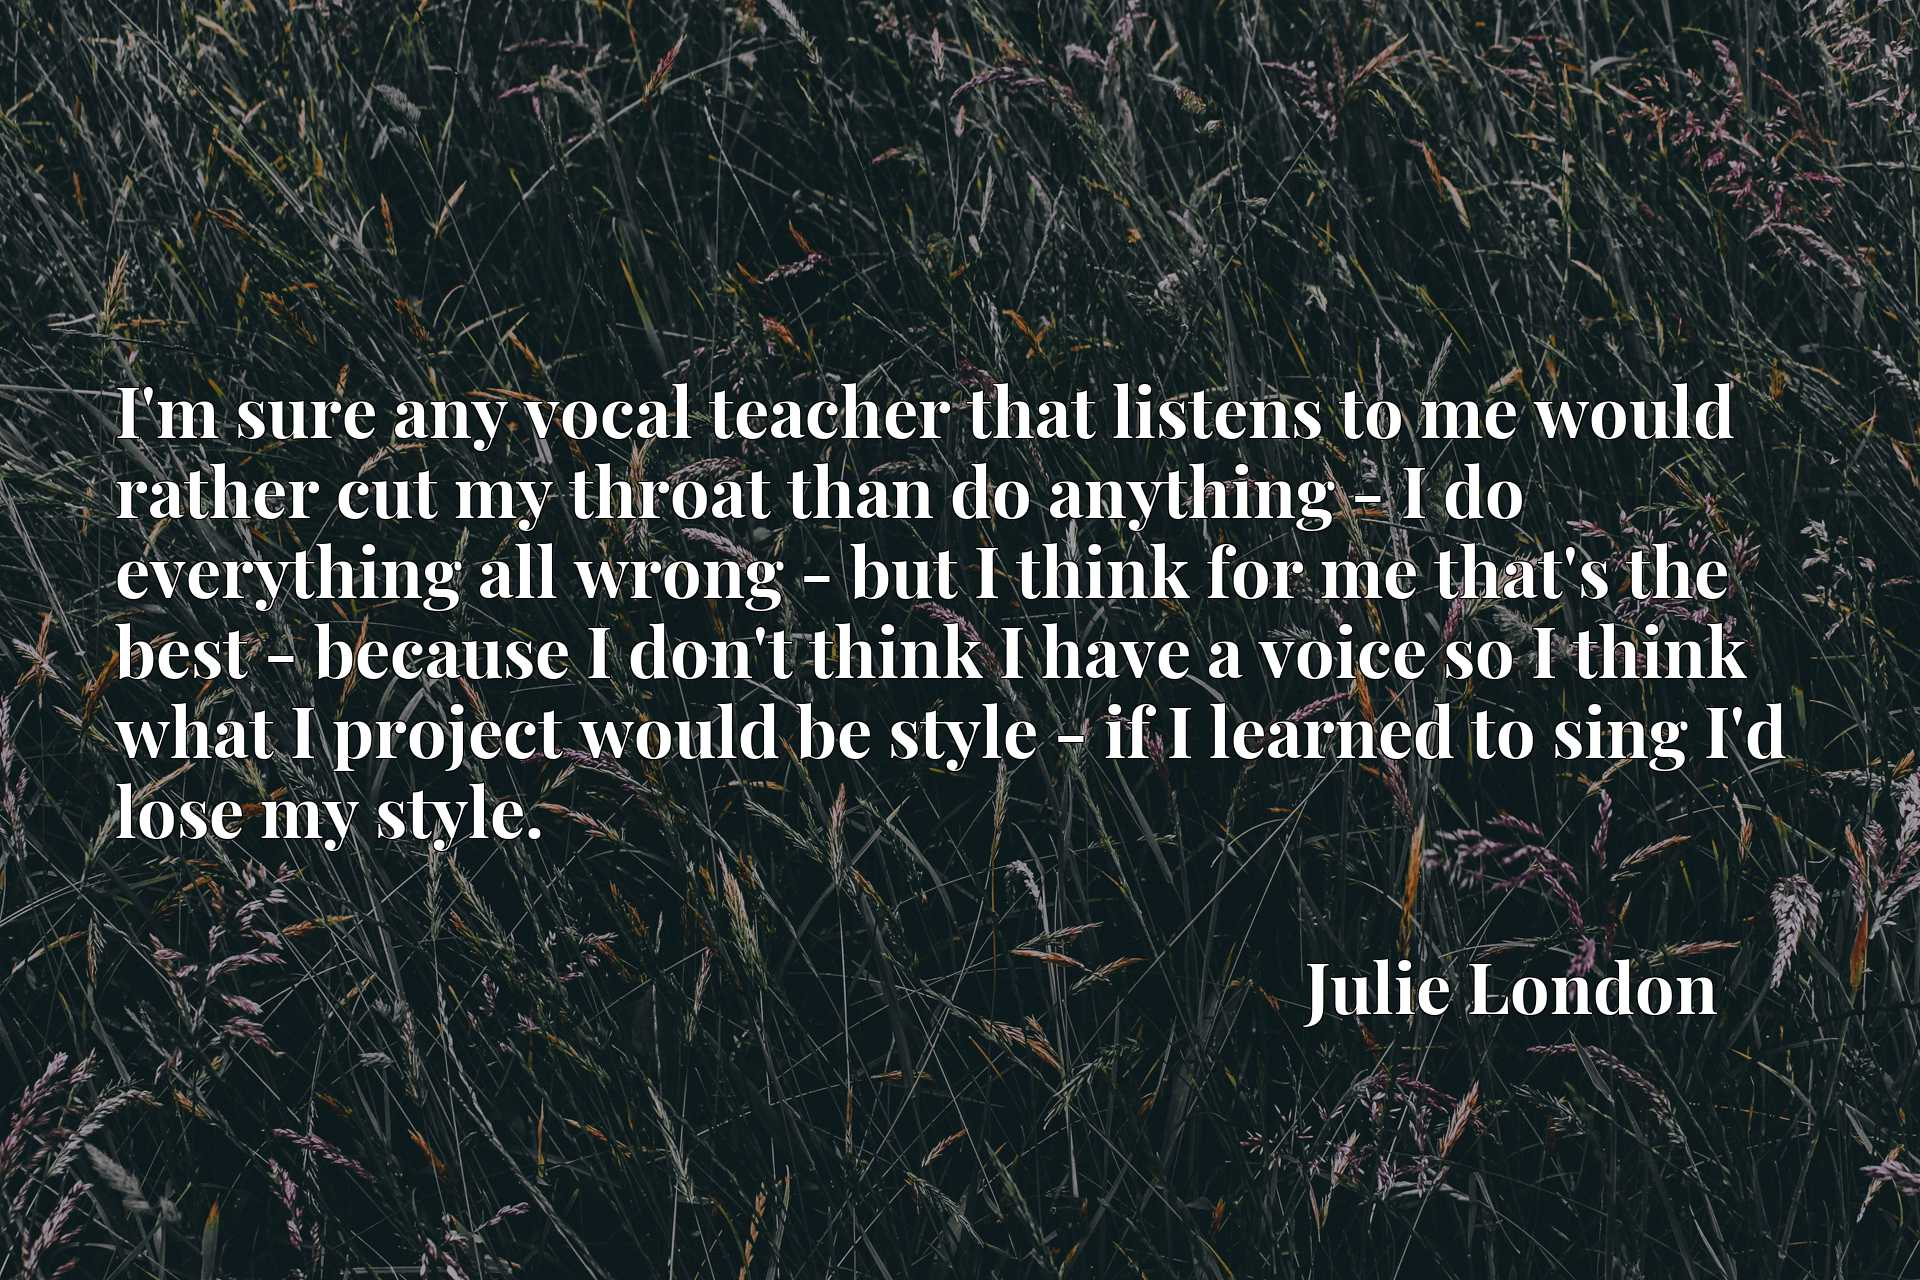 I'm sure any vocal teacher that listens to me would rather cut my throat than do anything - I do everything all wrong - but I think for me that's the best - because I don't think I have a voice so I think what I project would be style - if I learned to sing I'd lose my style.